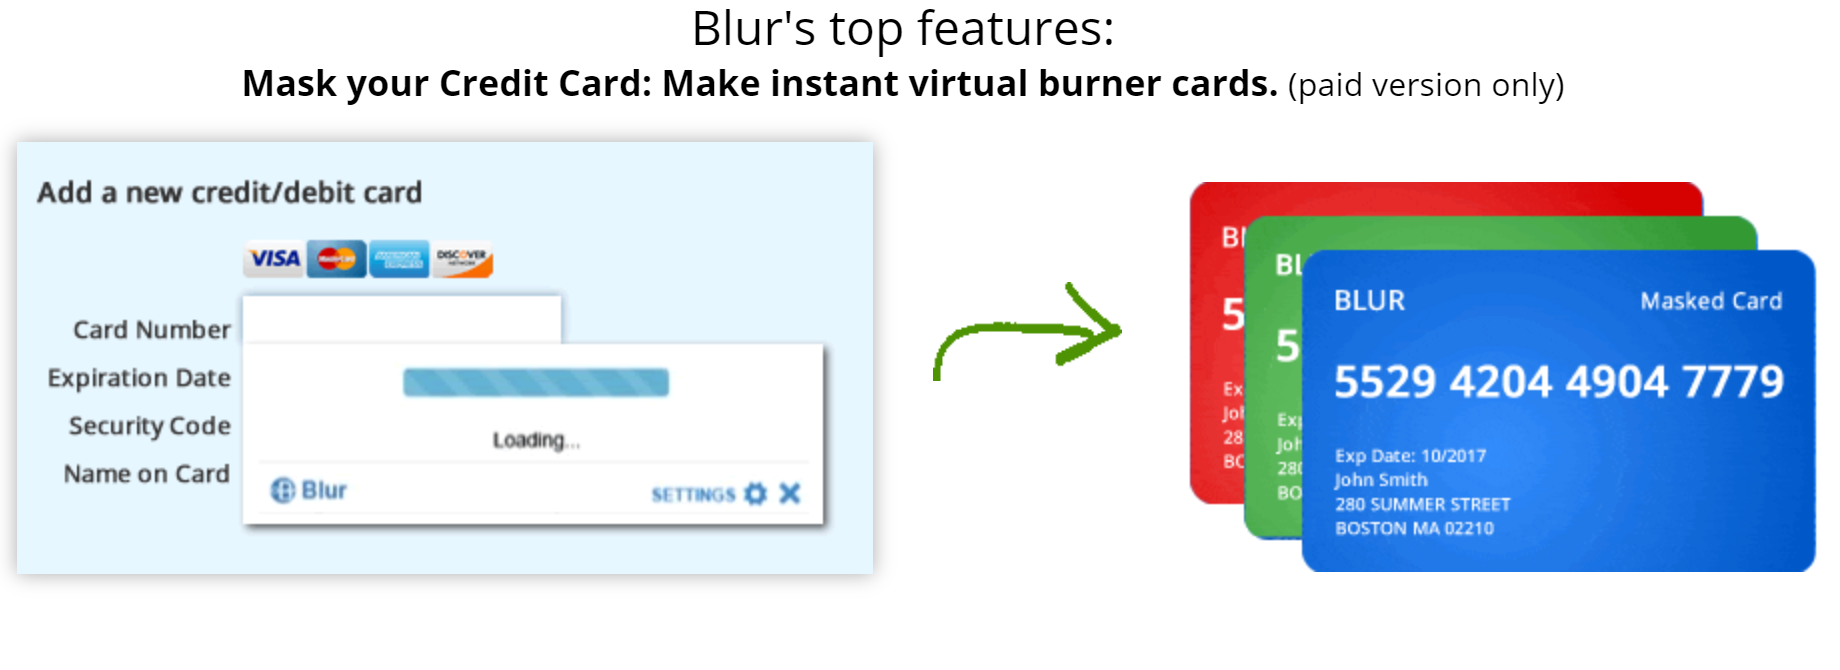 Blur Abine top features